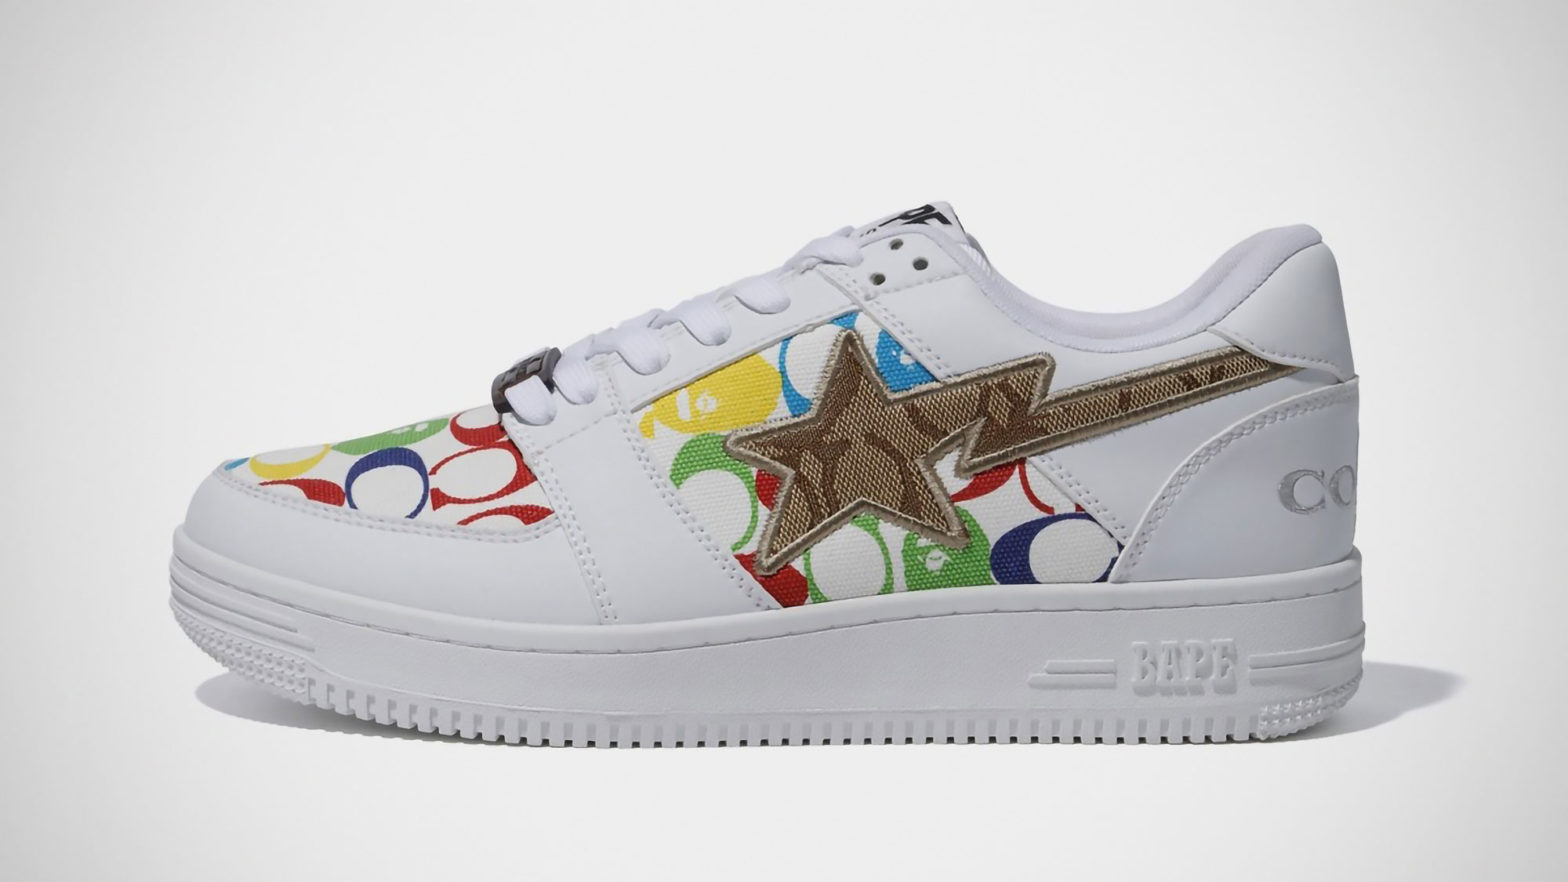 Coach x BAPE STA Sneakers February 22